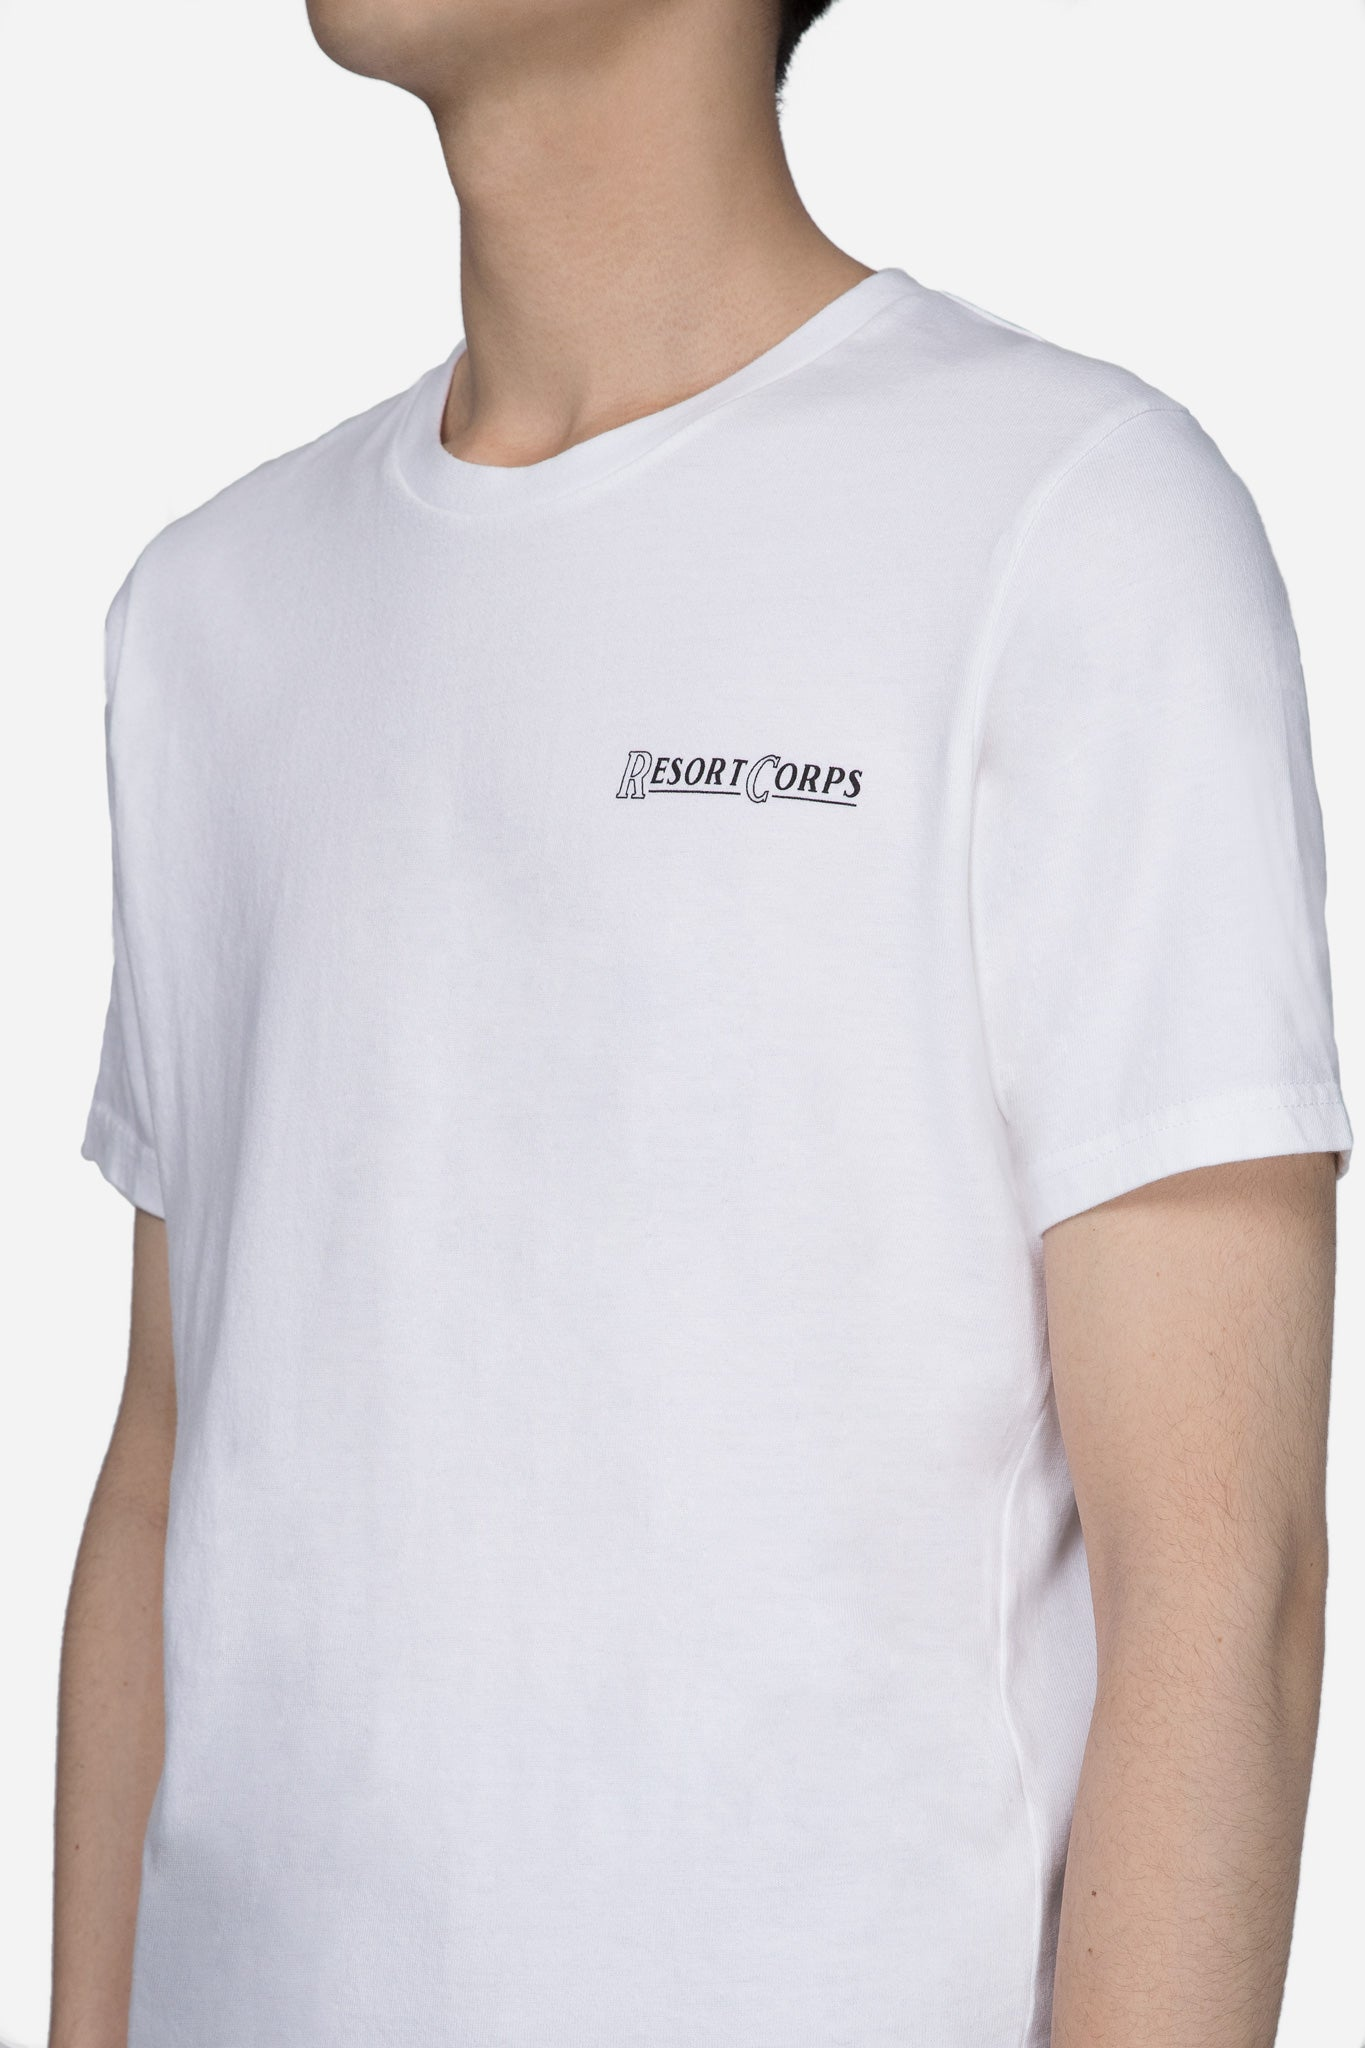 Resort Corps Tee White